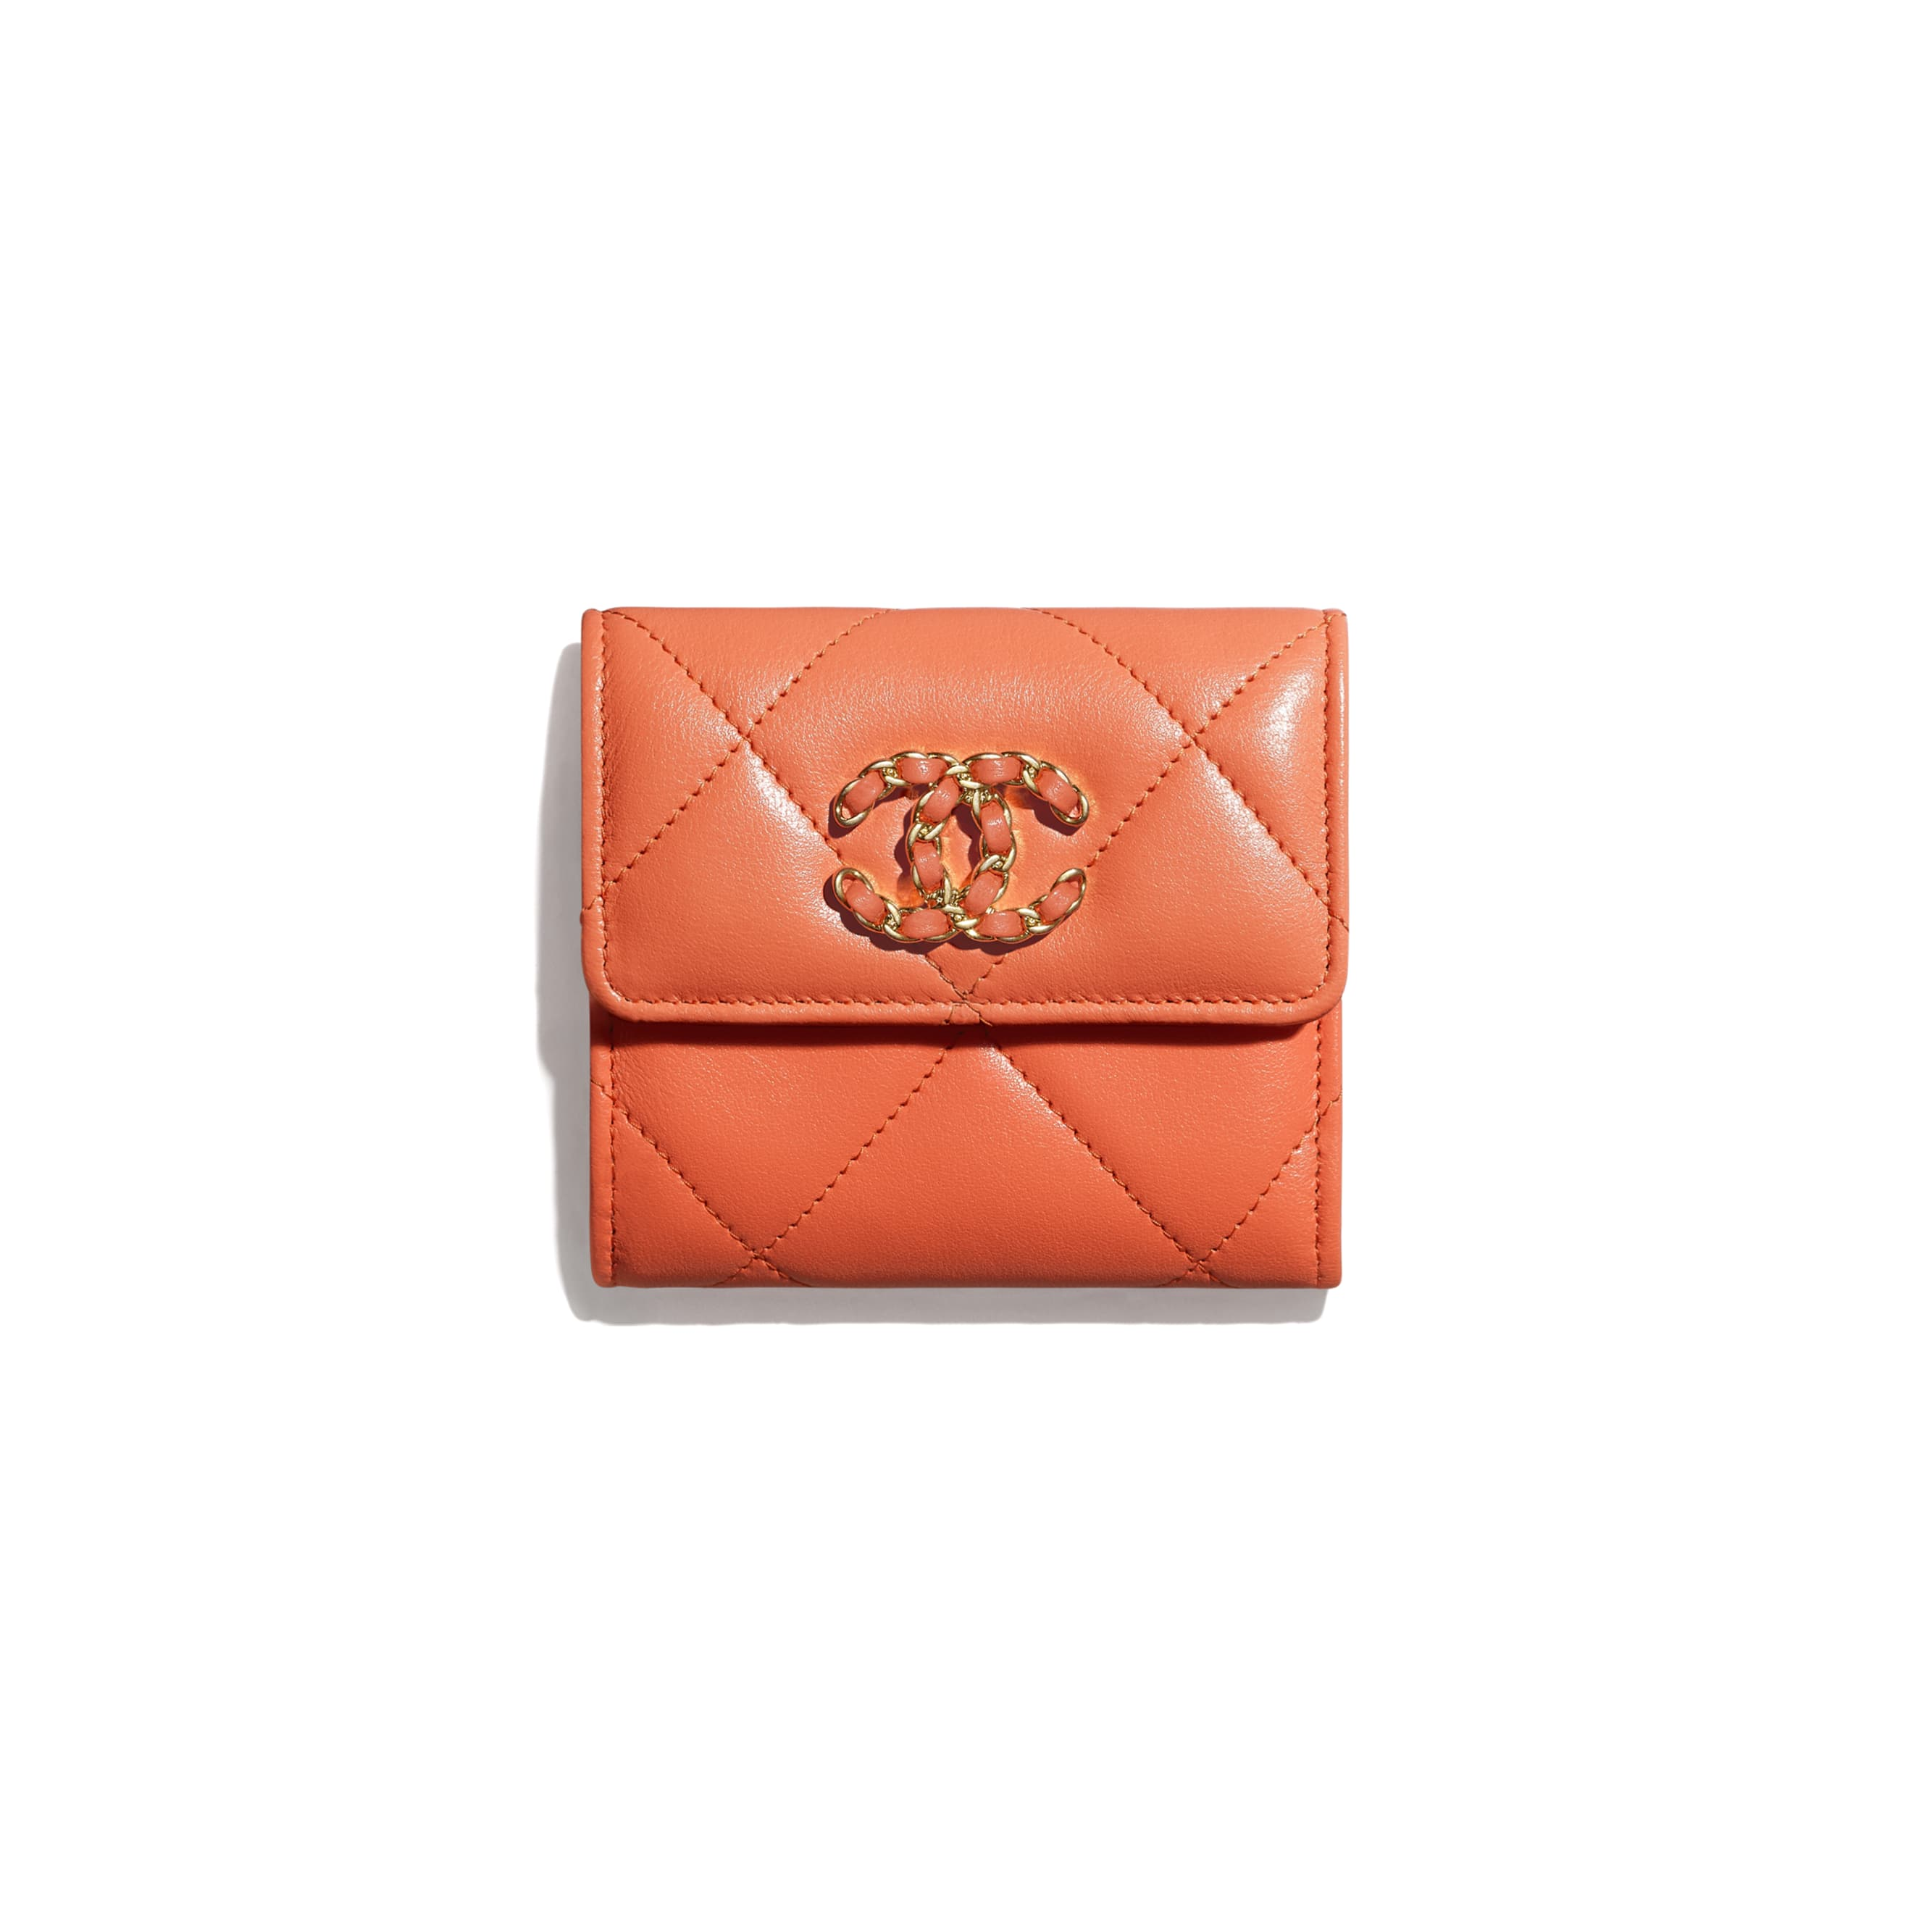 CHANEL 19 Small Flap Wallet - Orange - Lambskin, Gold-Tone, Silver-Tone & Ruthenium-Finish Metal - CHANEL - Default view - see standard sized version